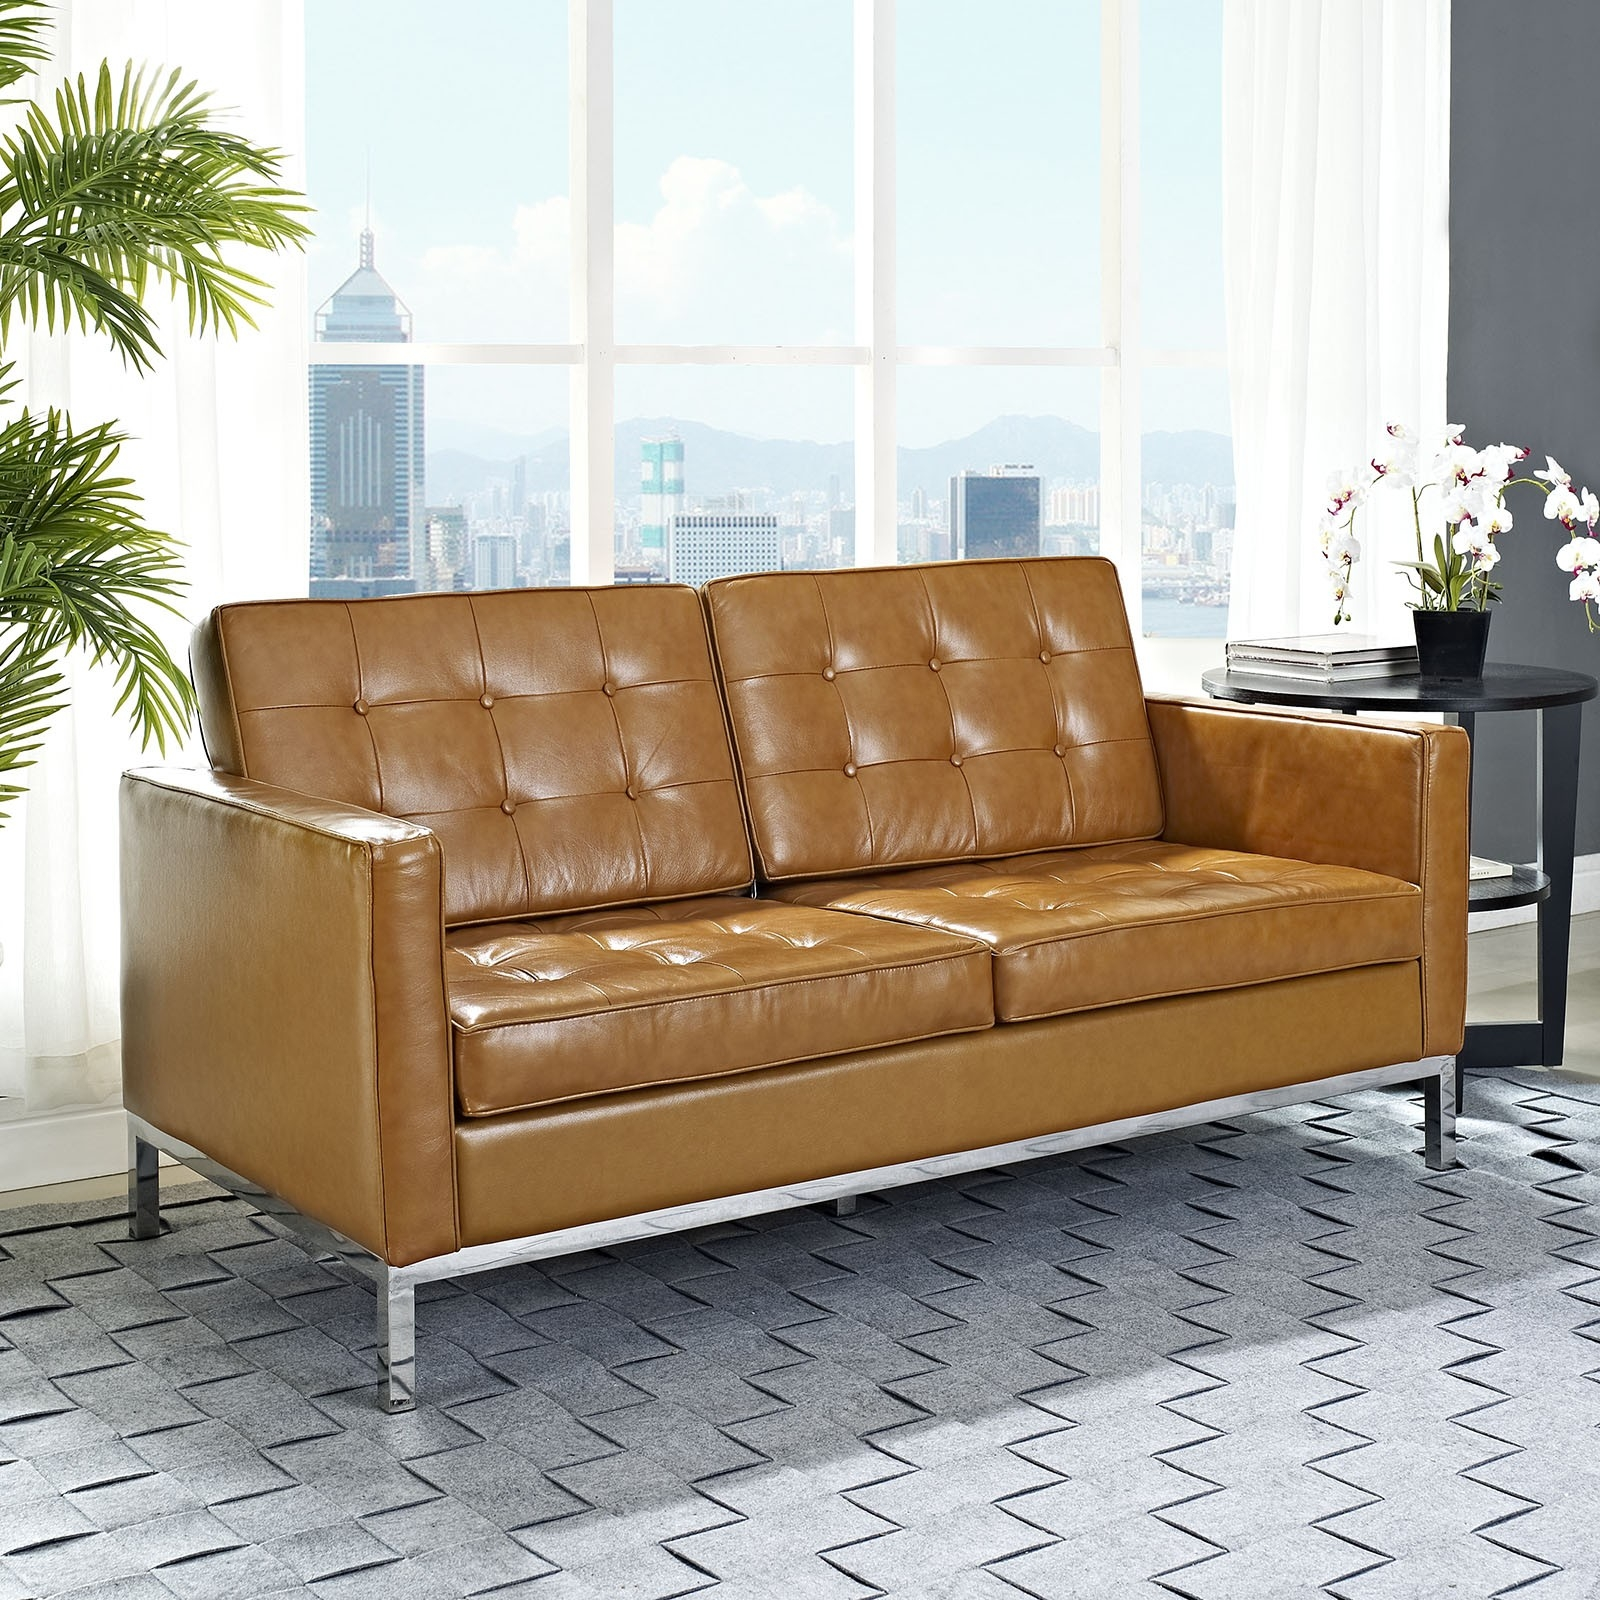 The Florence Statesman Leather Chesterfield Sofa Authentic Within Florence Knoll Leather Sofas (View 15 of 15)